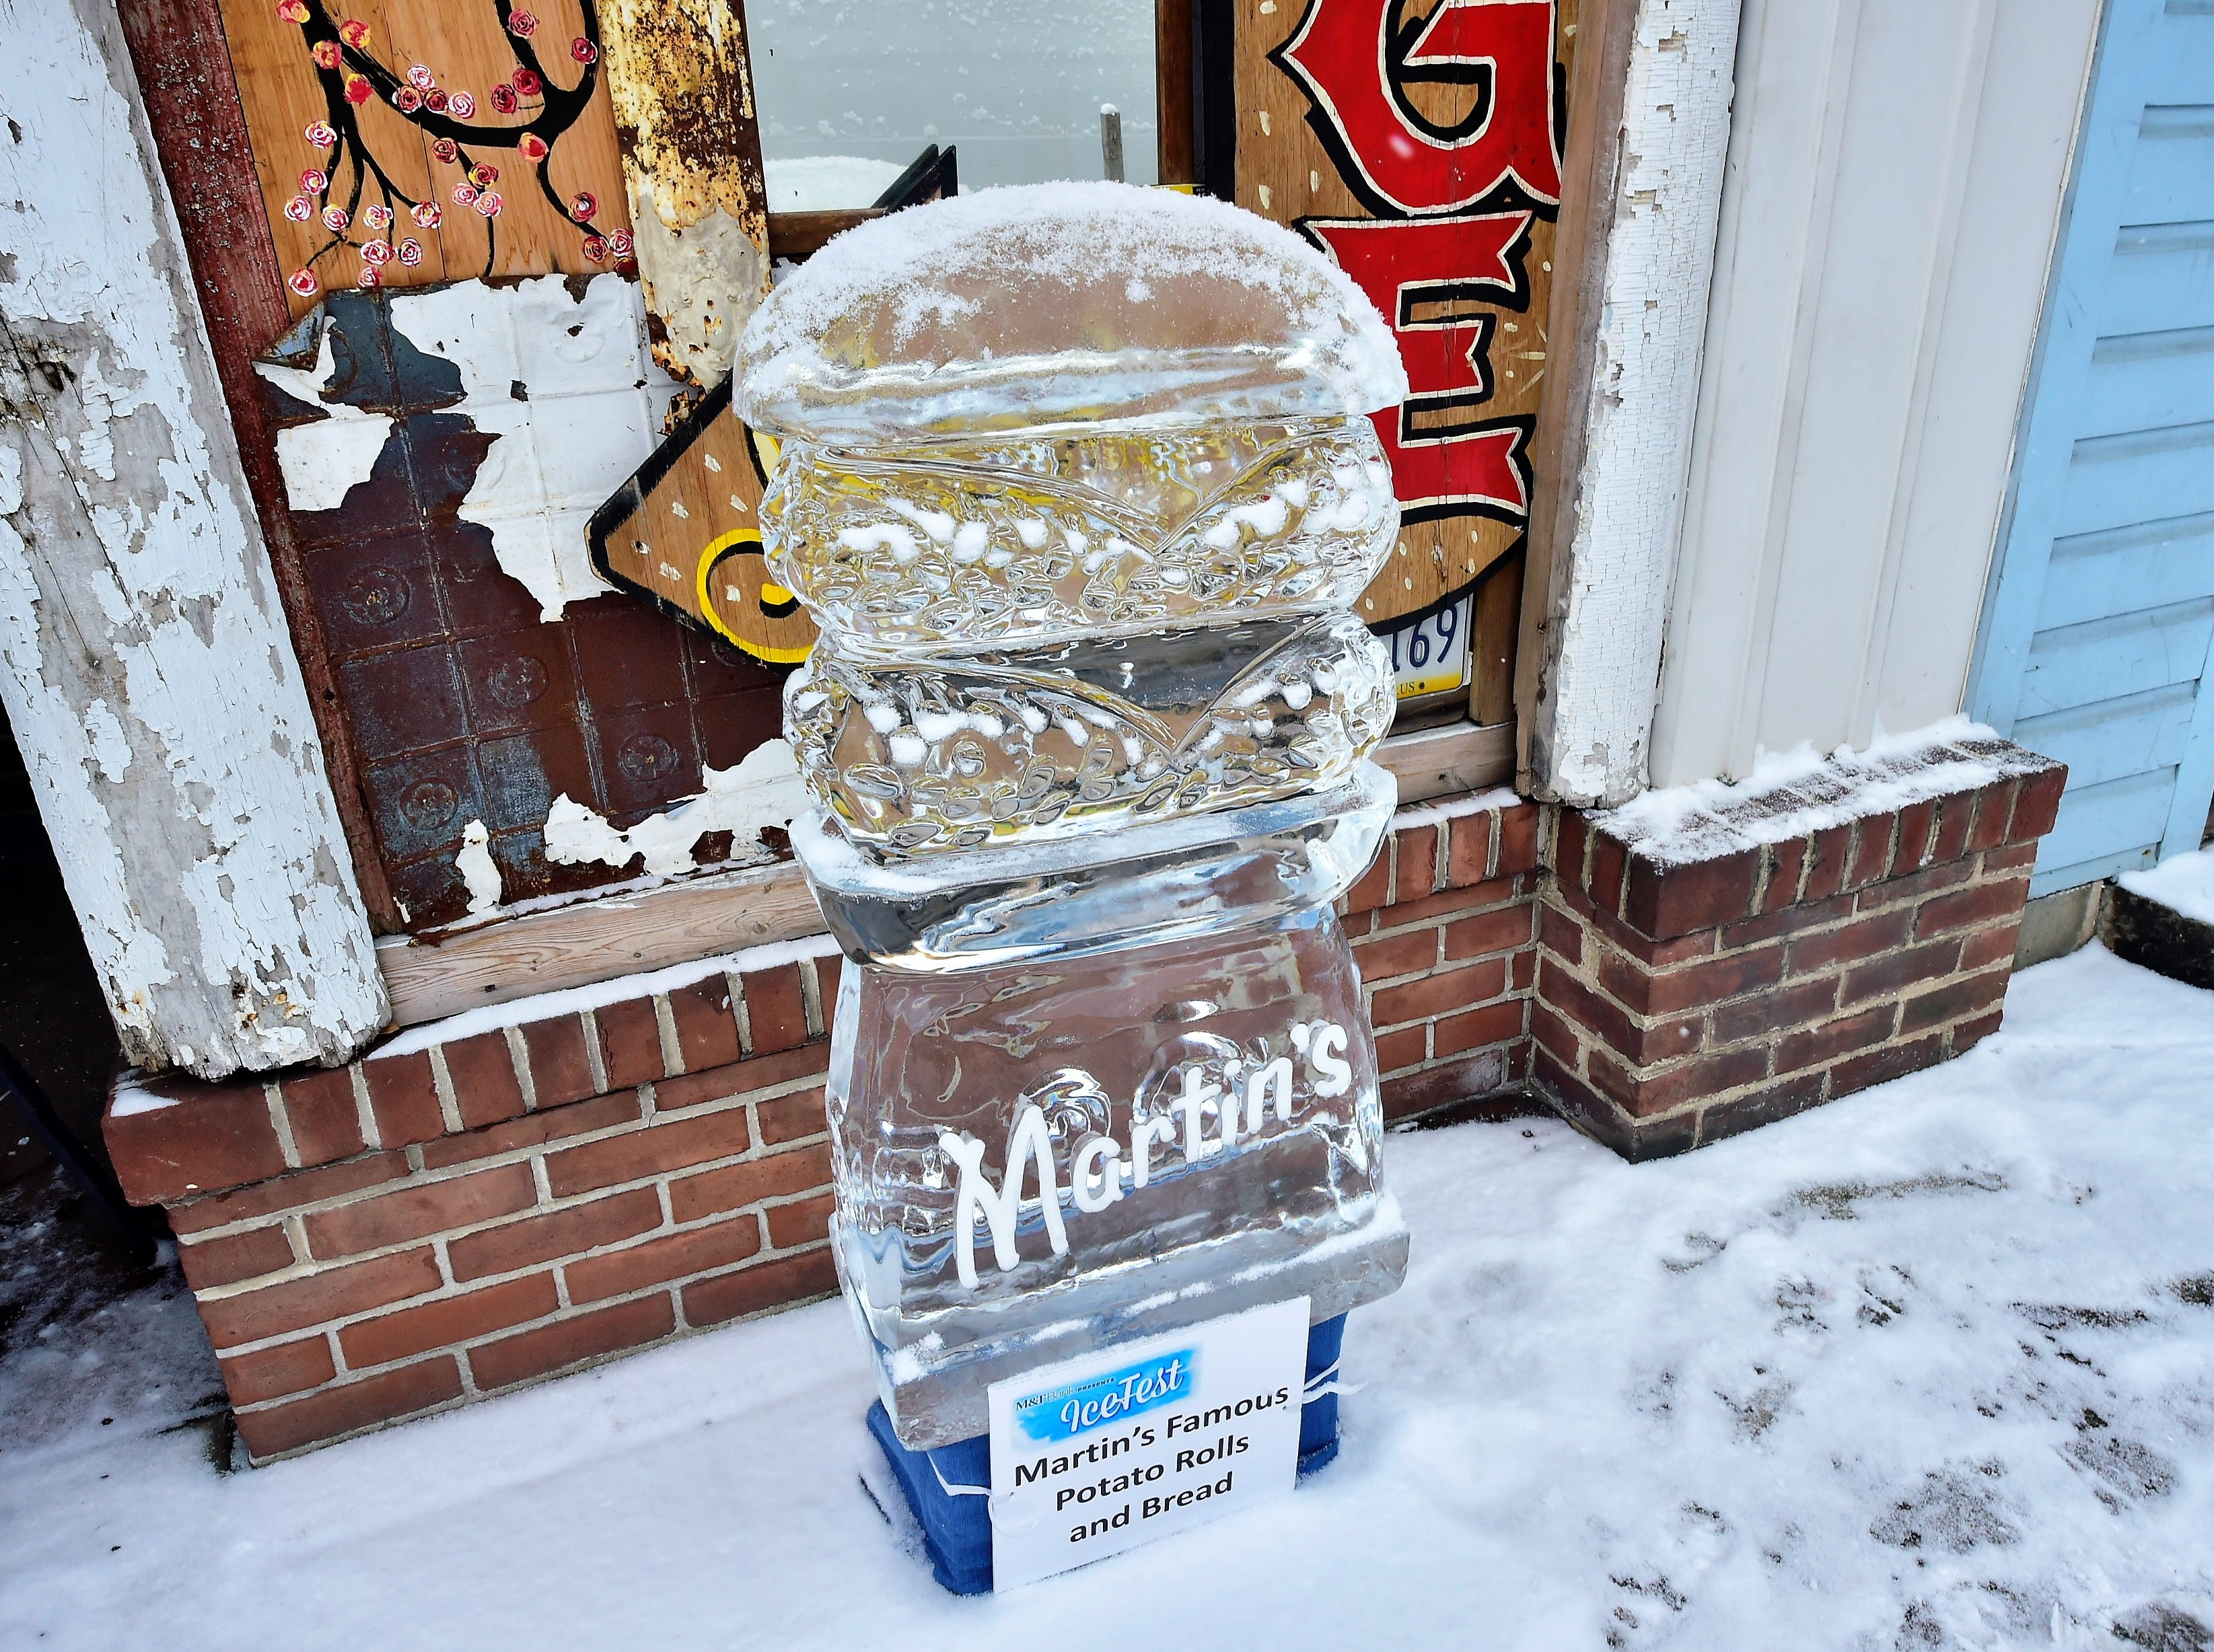 DiMartino Ice Company carved around 80 ice sculptures for IceFest 2019 in Chambersburg. Here is a small fraction of them. All of the sculptures pictured in this gallery are located on South Main Street between the square and Washington Street.